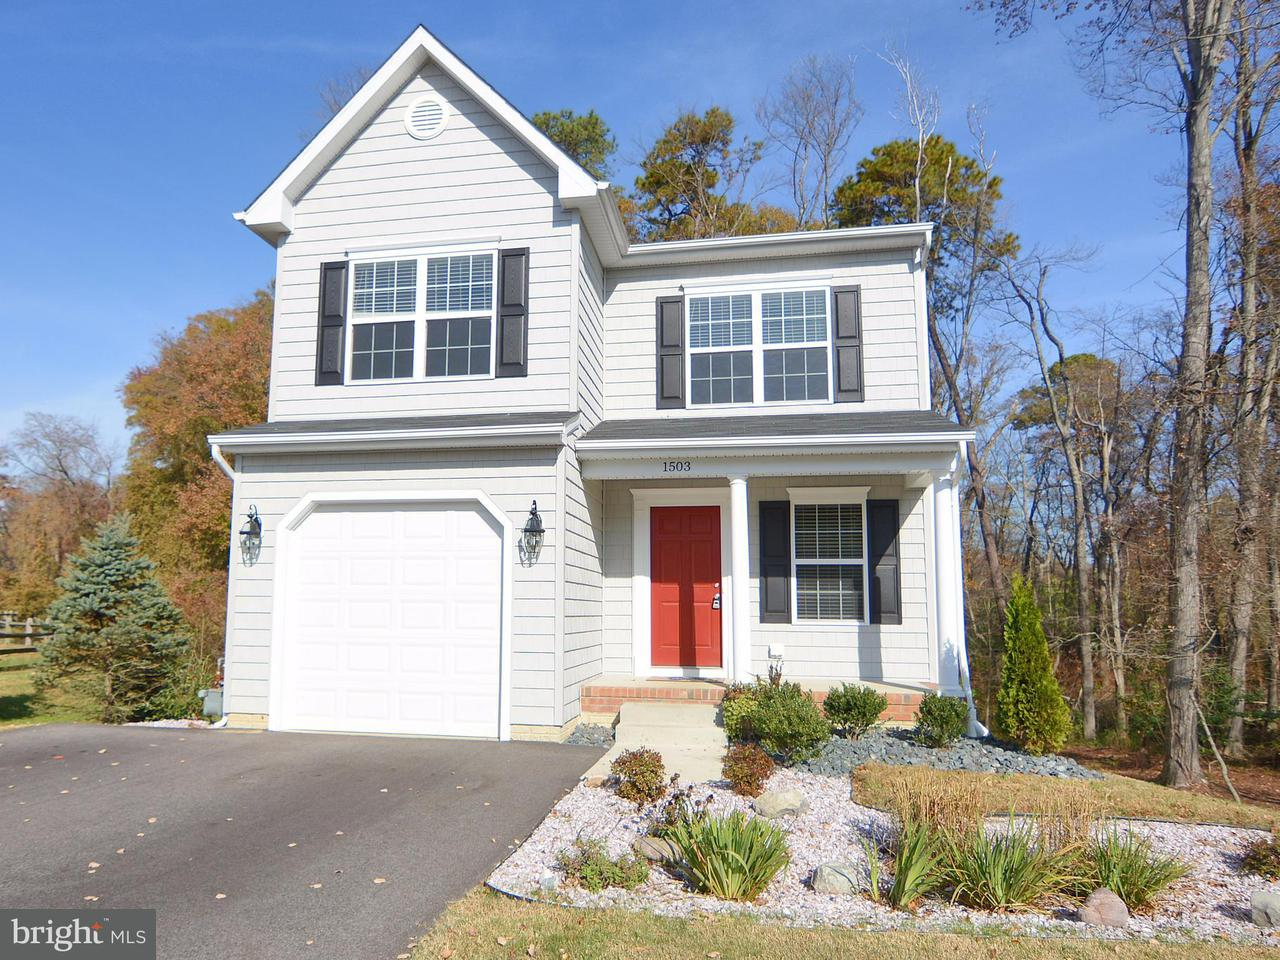 1503  Lincoln Severn, MD 21144